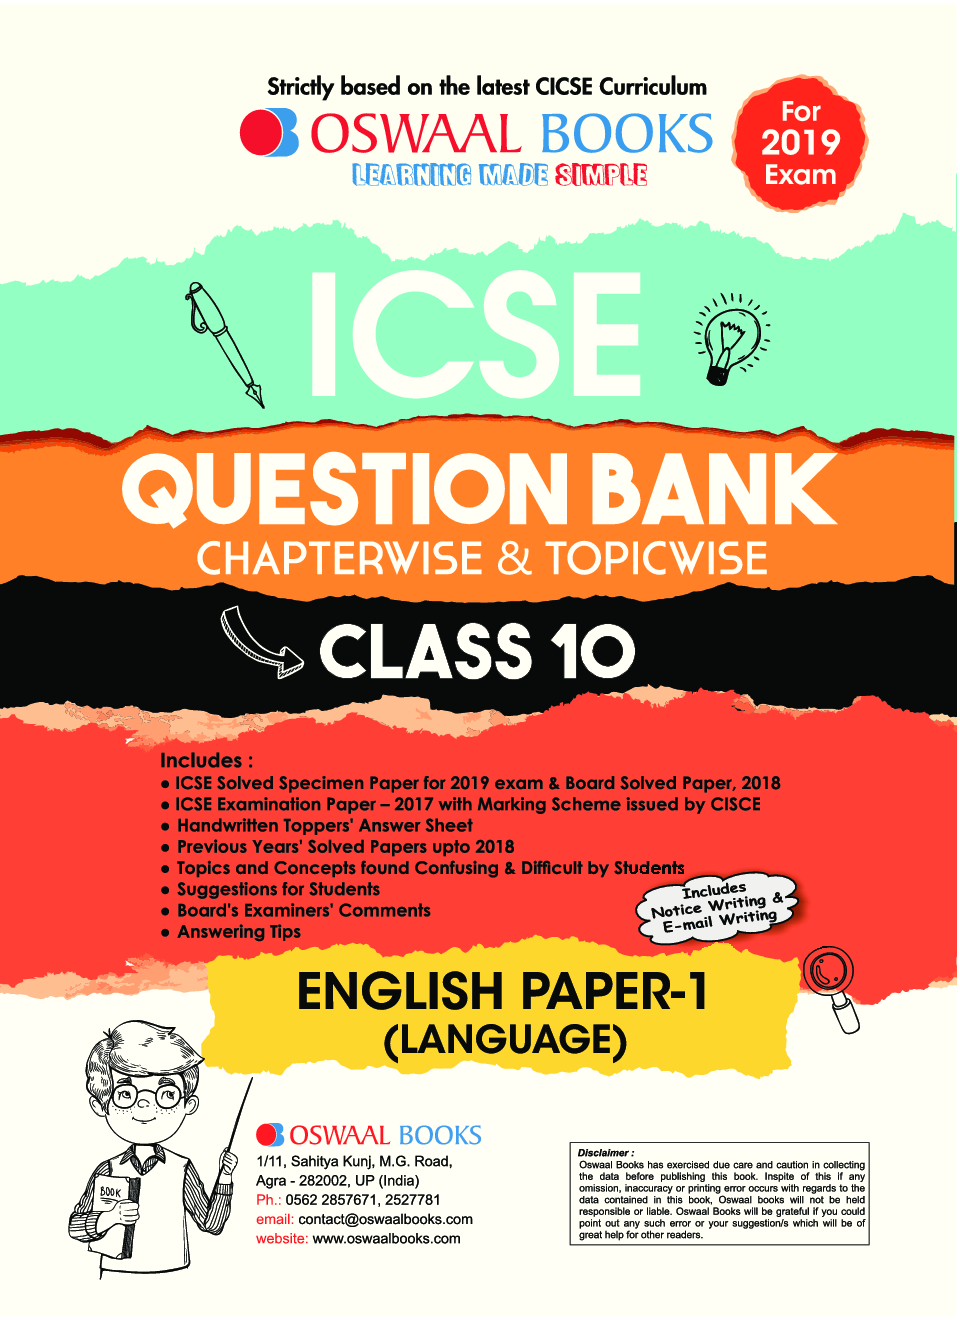 Download Oswaal ICSE Question Bank Chapterwise & Topicwise Class - X  English Language Paper 1 For 2019 Exam PDF Online